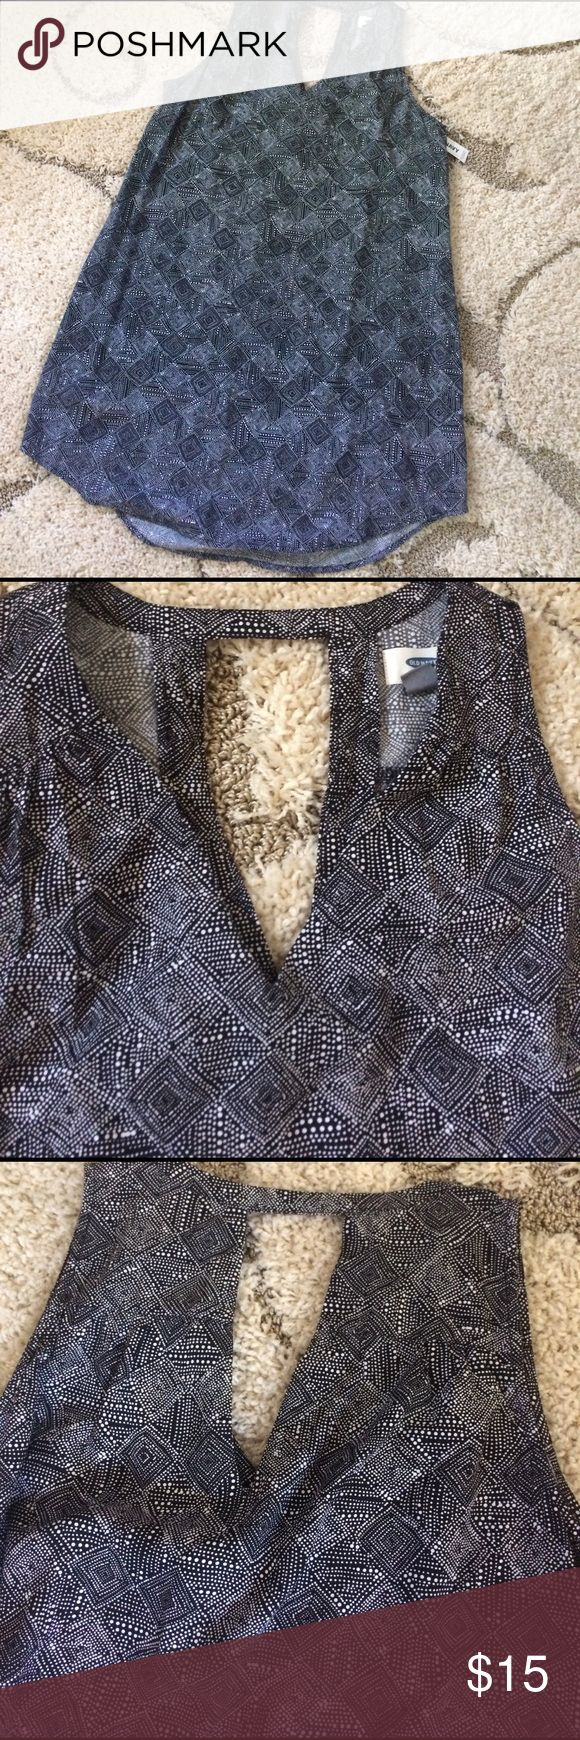 """NWT dress NWT dress. Back white multi print.  Sleeveless. V neck with keyhole in back 100% viscose, feels like a soft cotton.  32"""" in front. 33"""" in back.  Petite size.  Bust measures 20"""" across. Old Navy Dresses"""